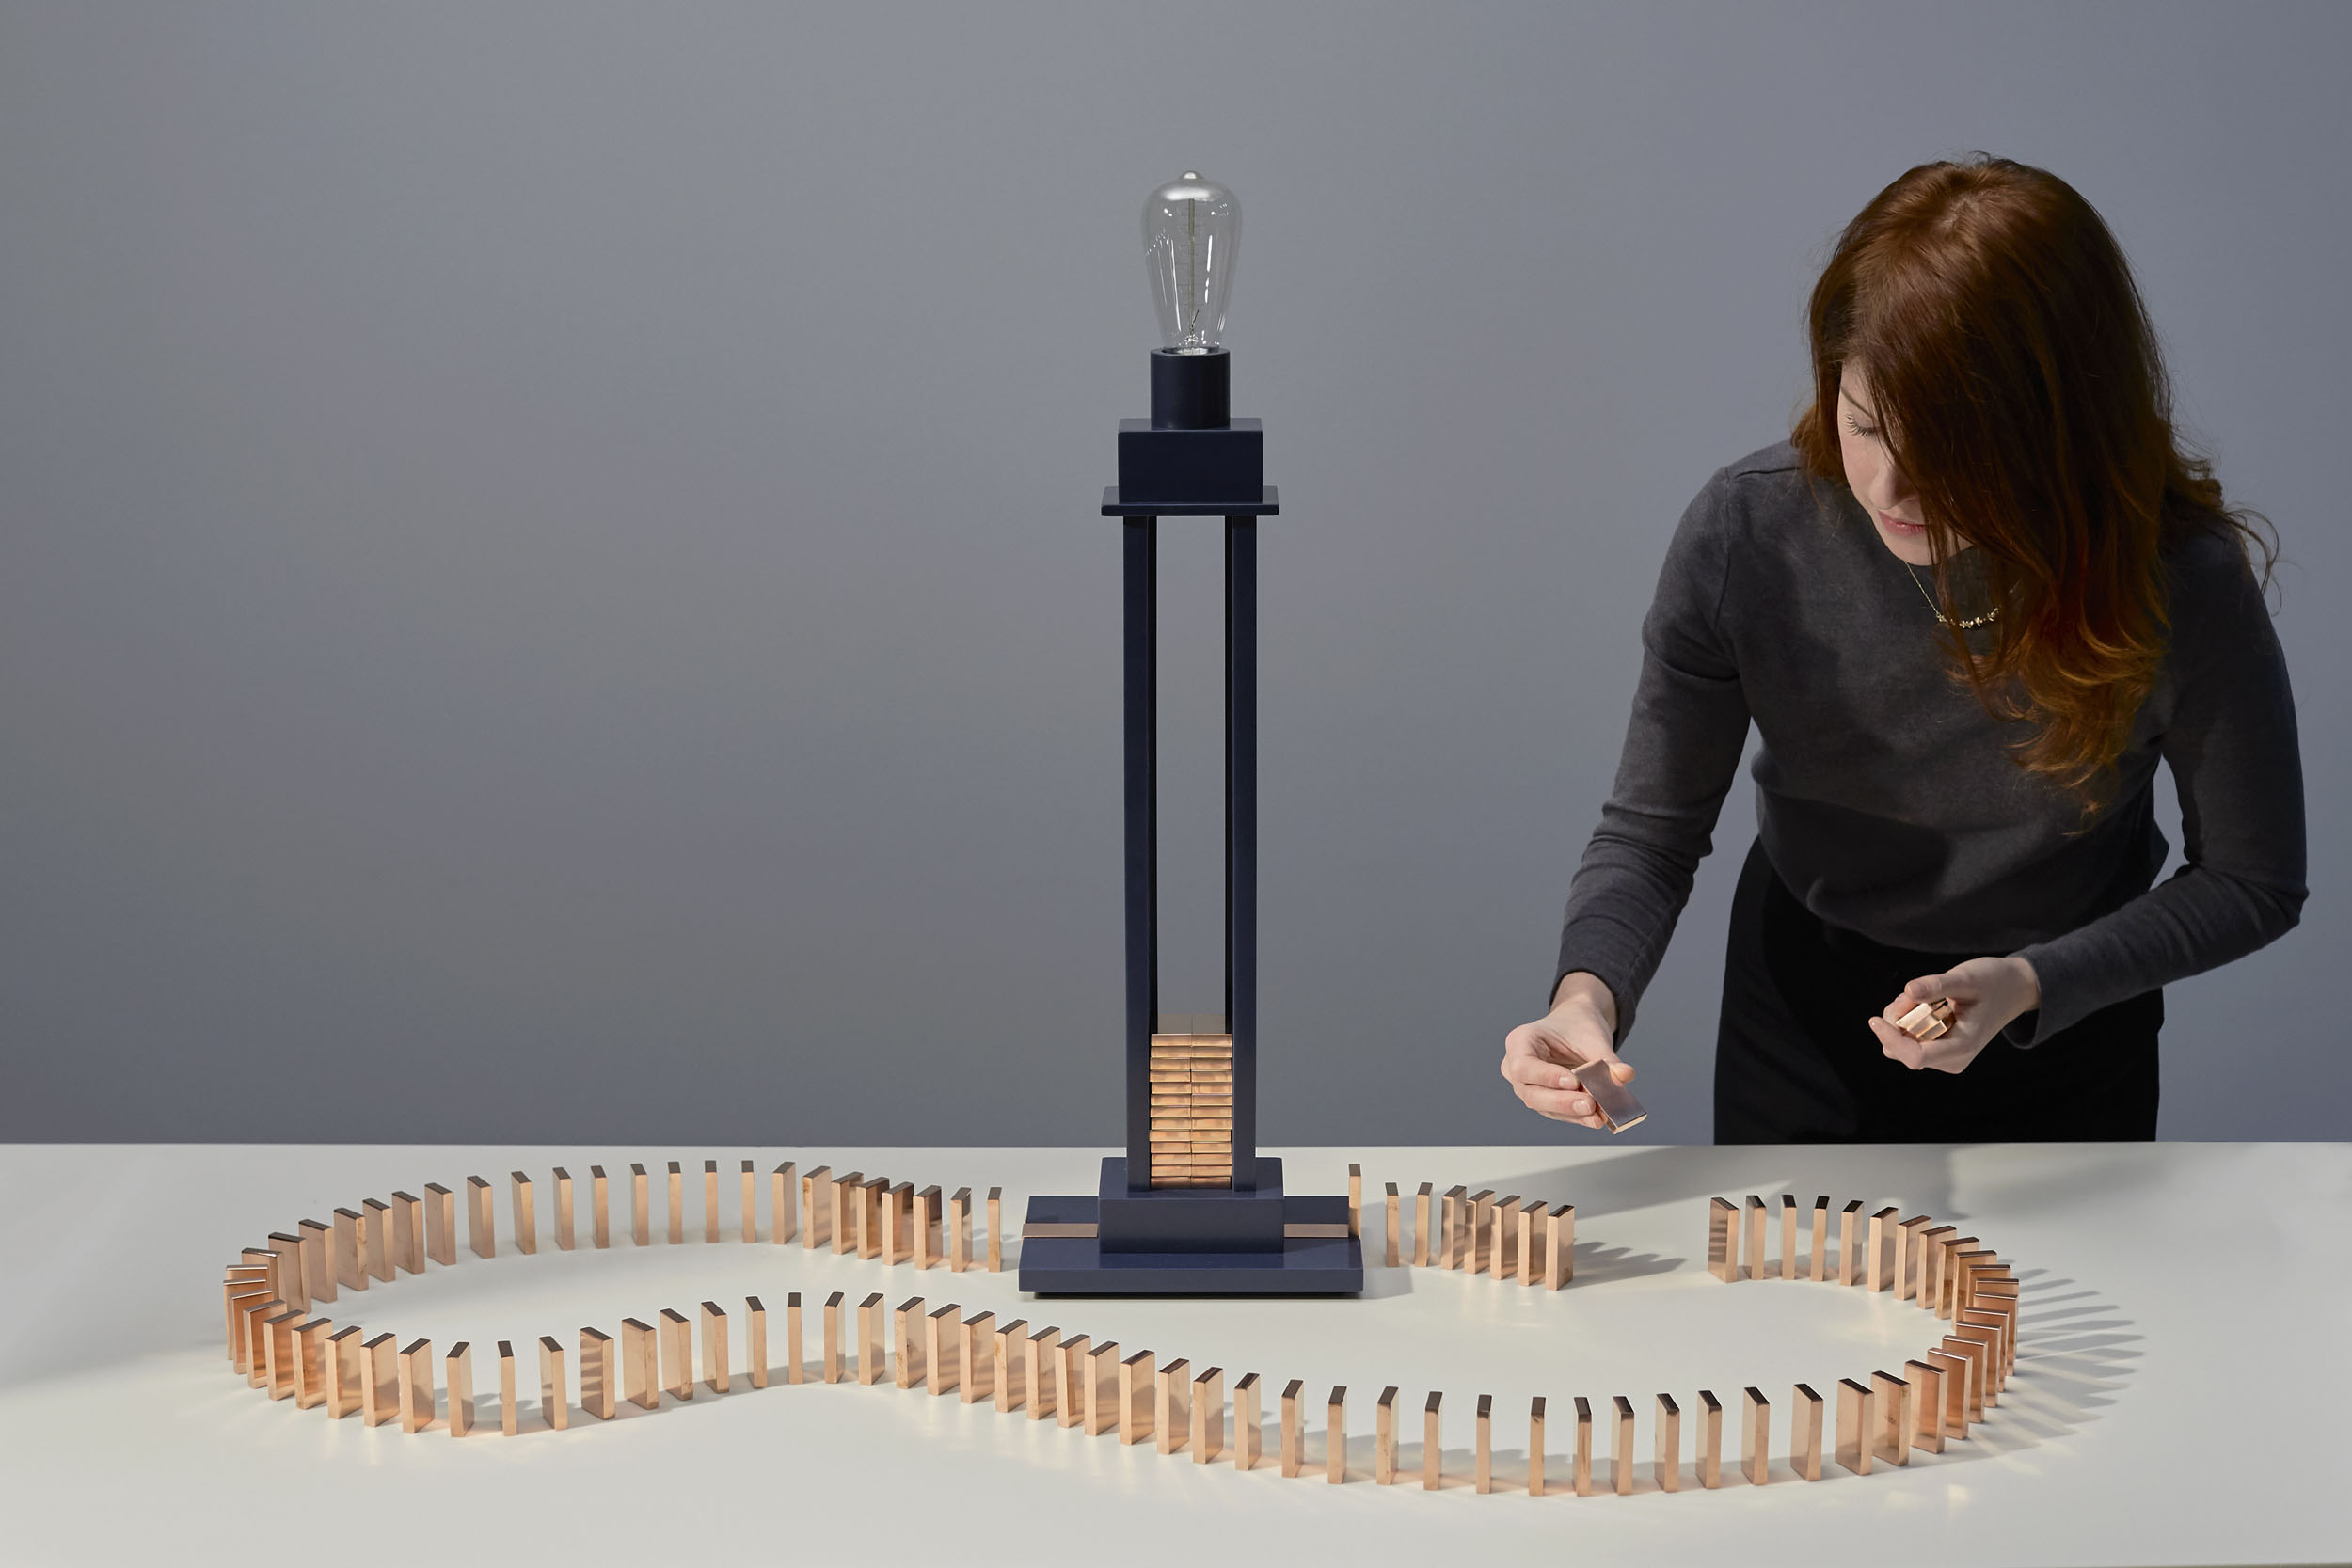 A girl starts the domino rally which switches the Domino Light on